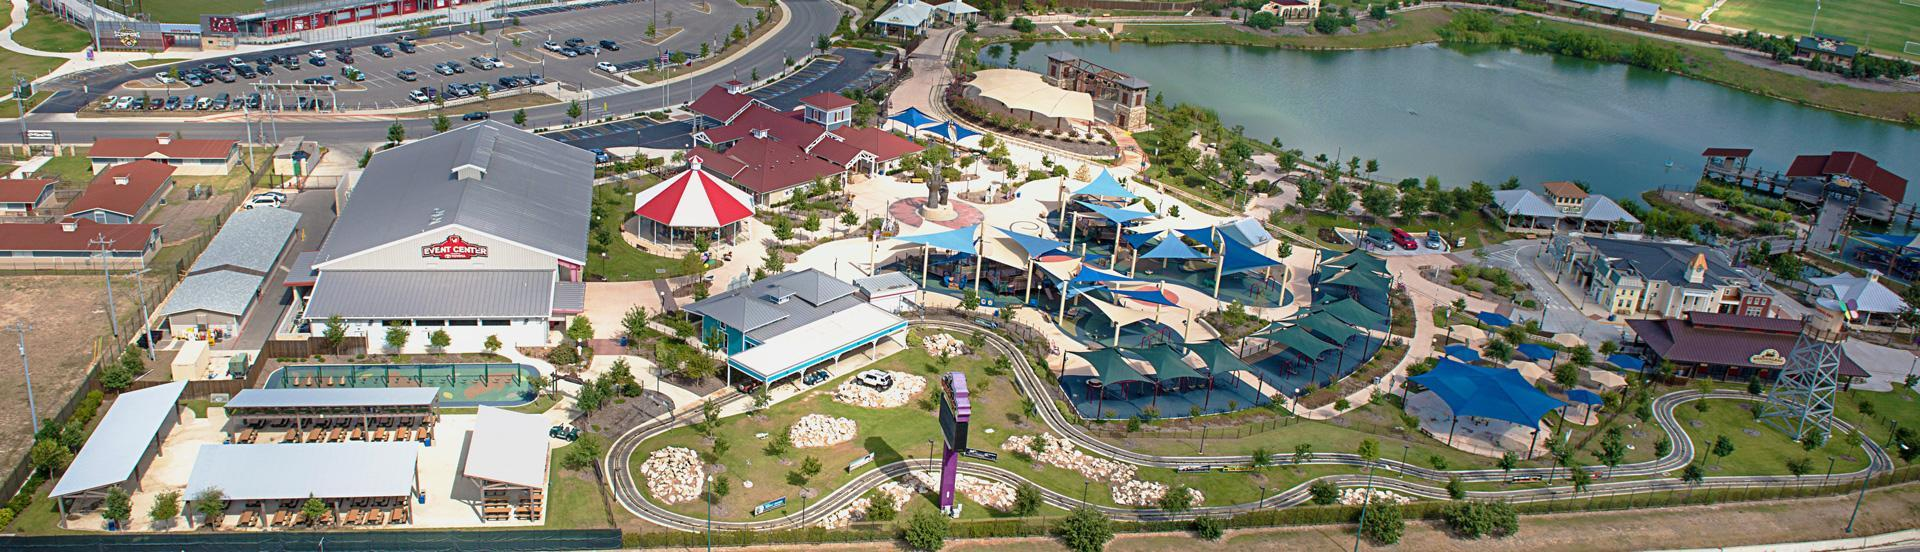 Morgan's Wonderland San Antonio Aerial View